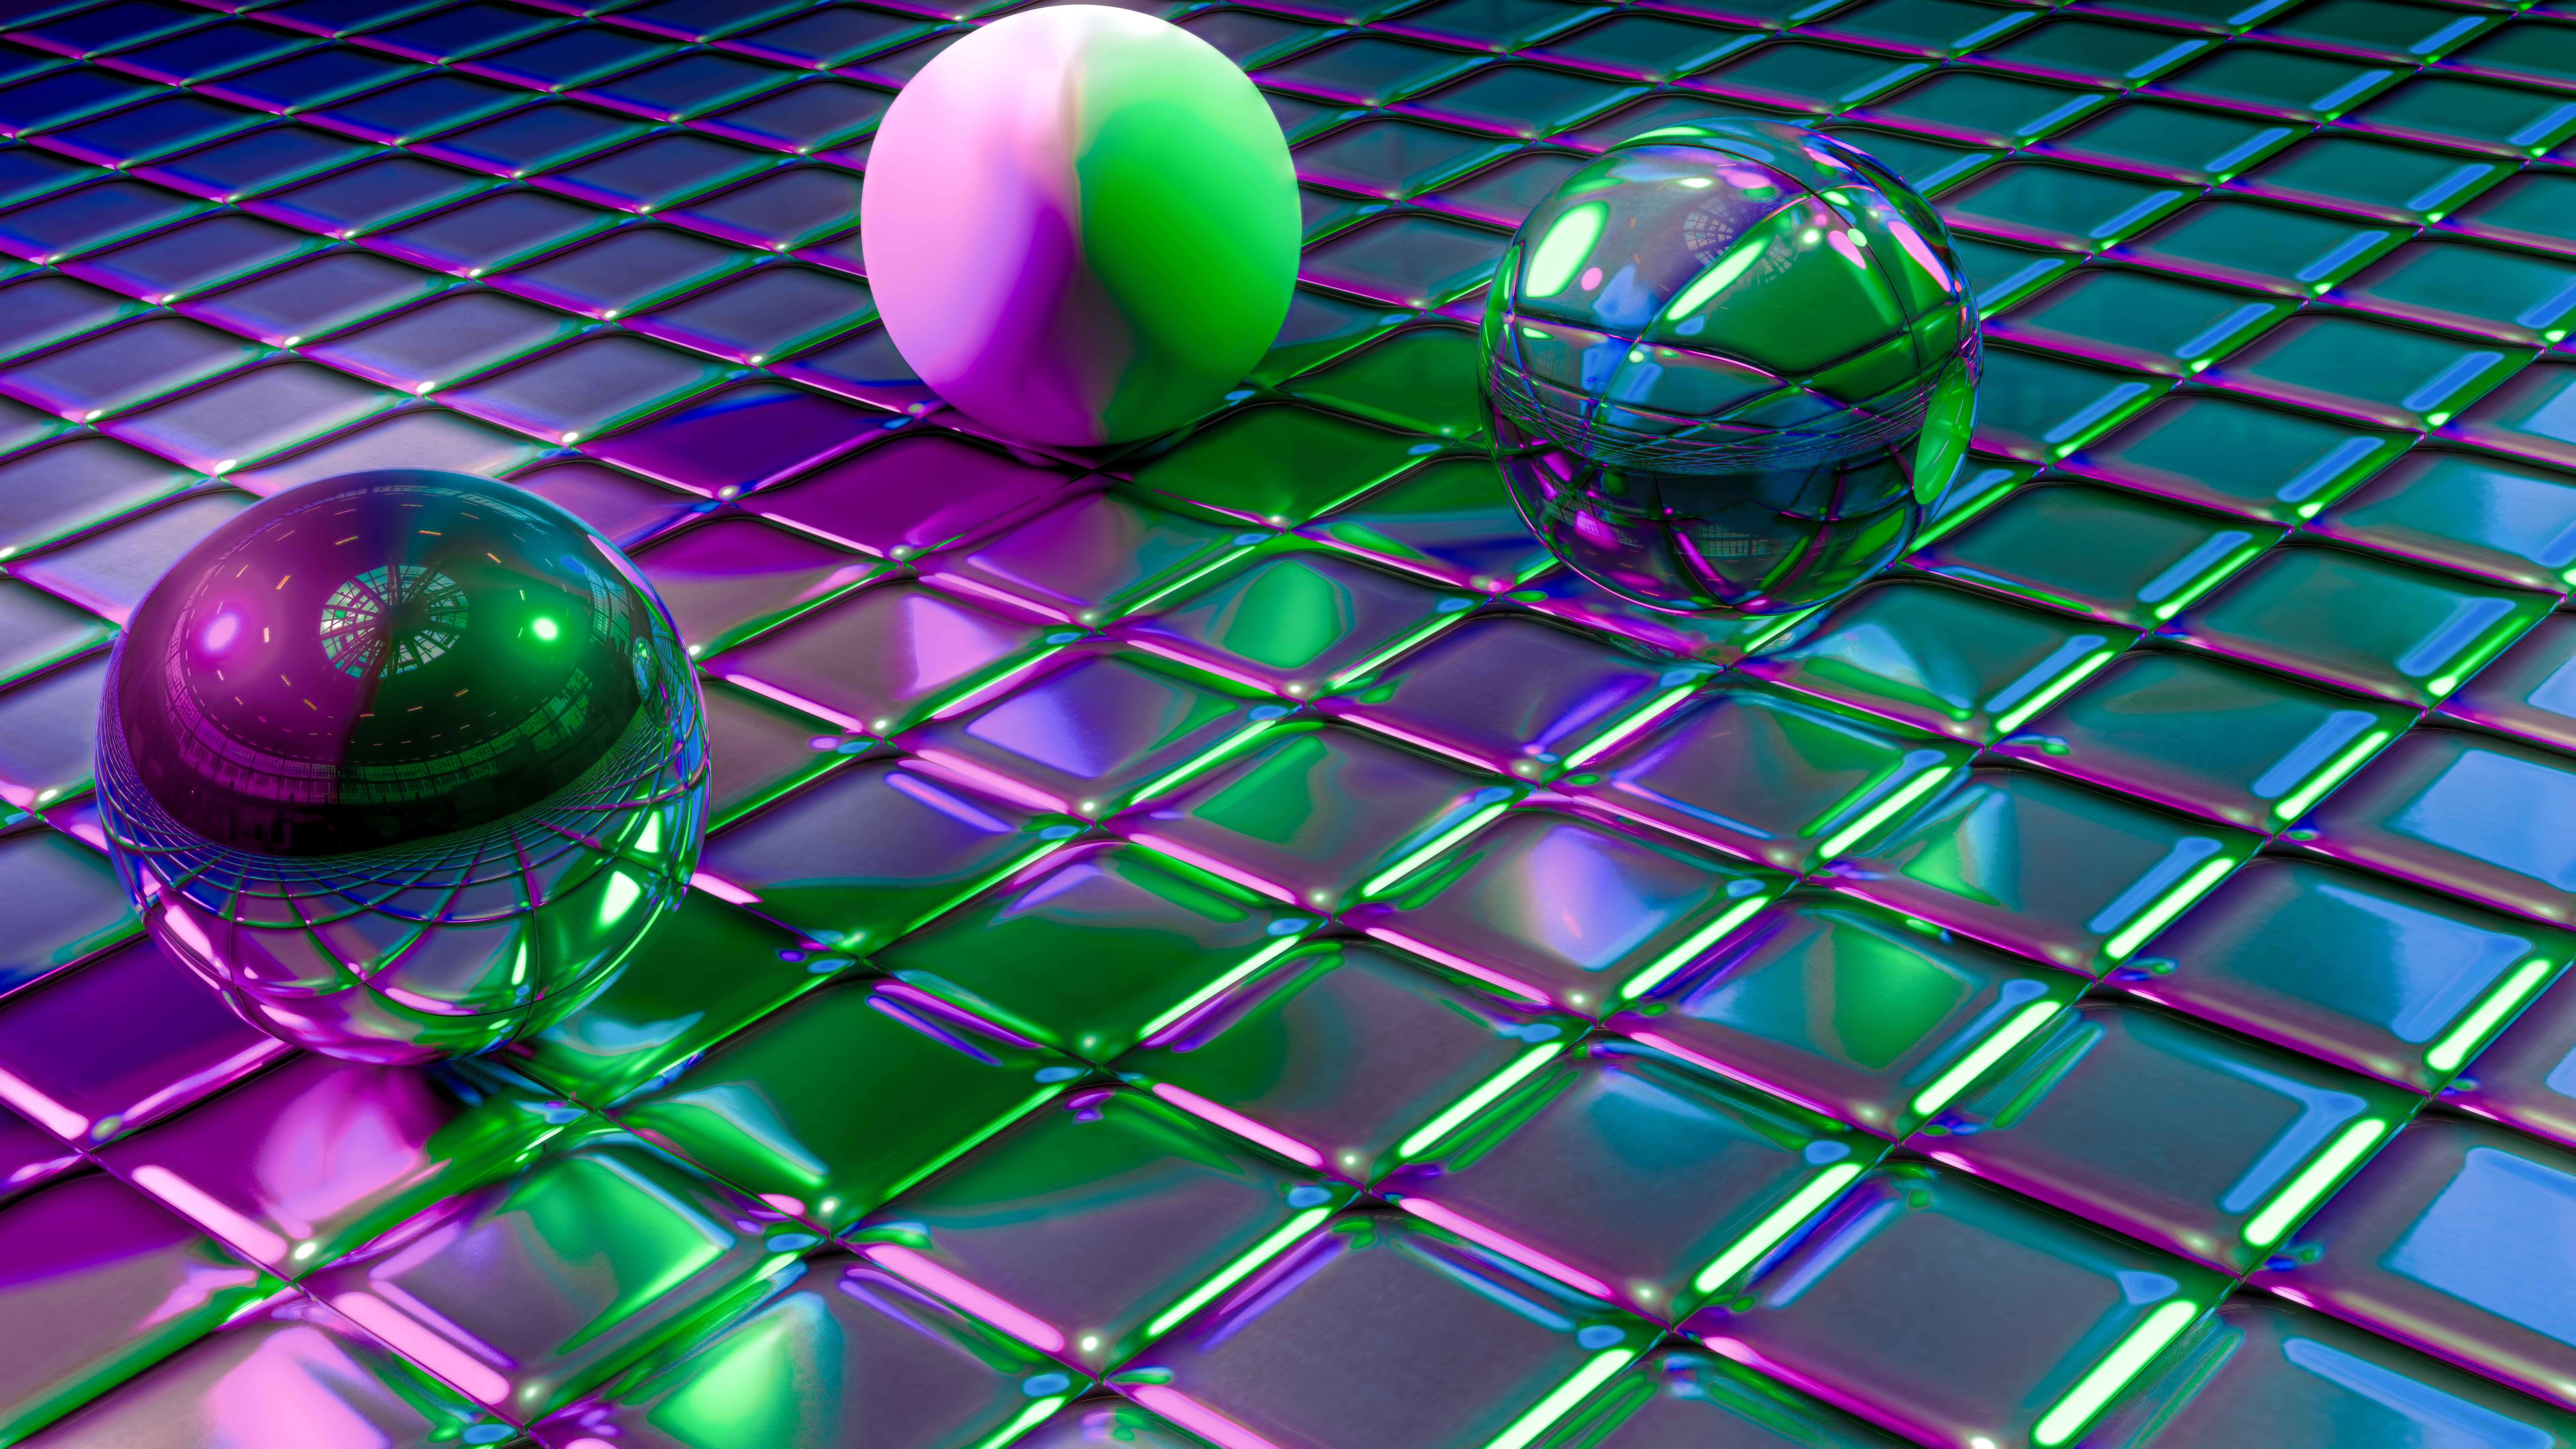 138261 Screensavers and Wallpapers Balls for phone. Download 3D, Reflection, Shine, Brilliance, Form, Forms, Balls, Cuba pictures for free